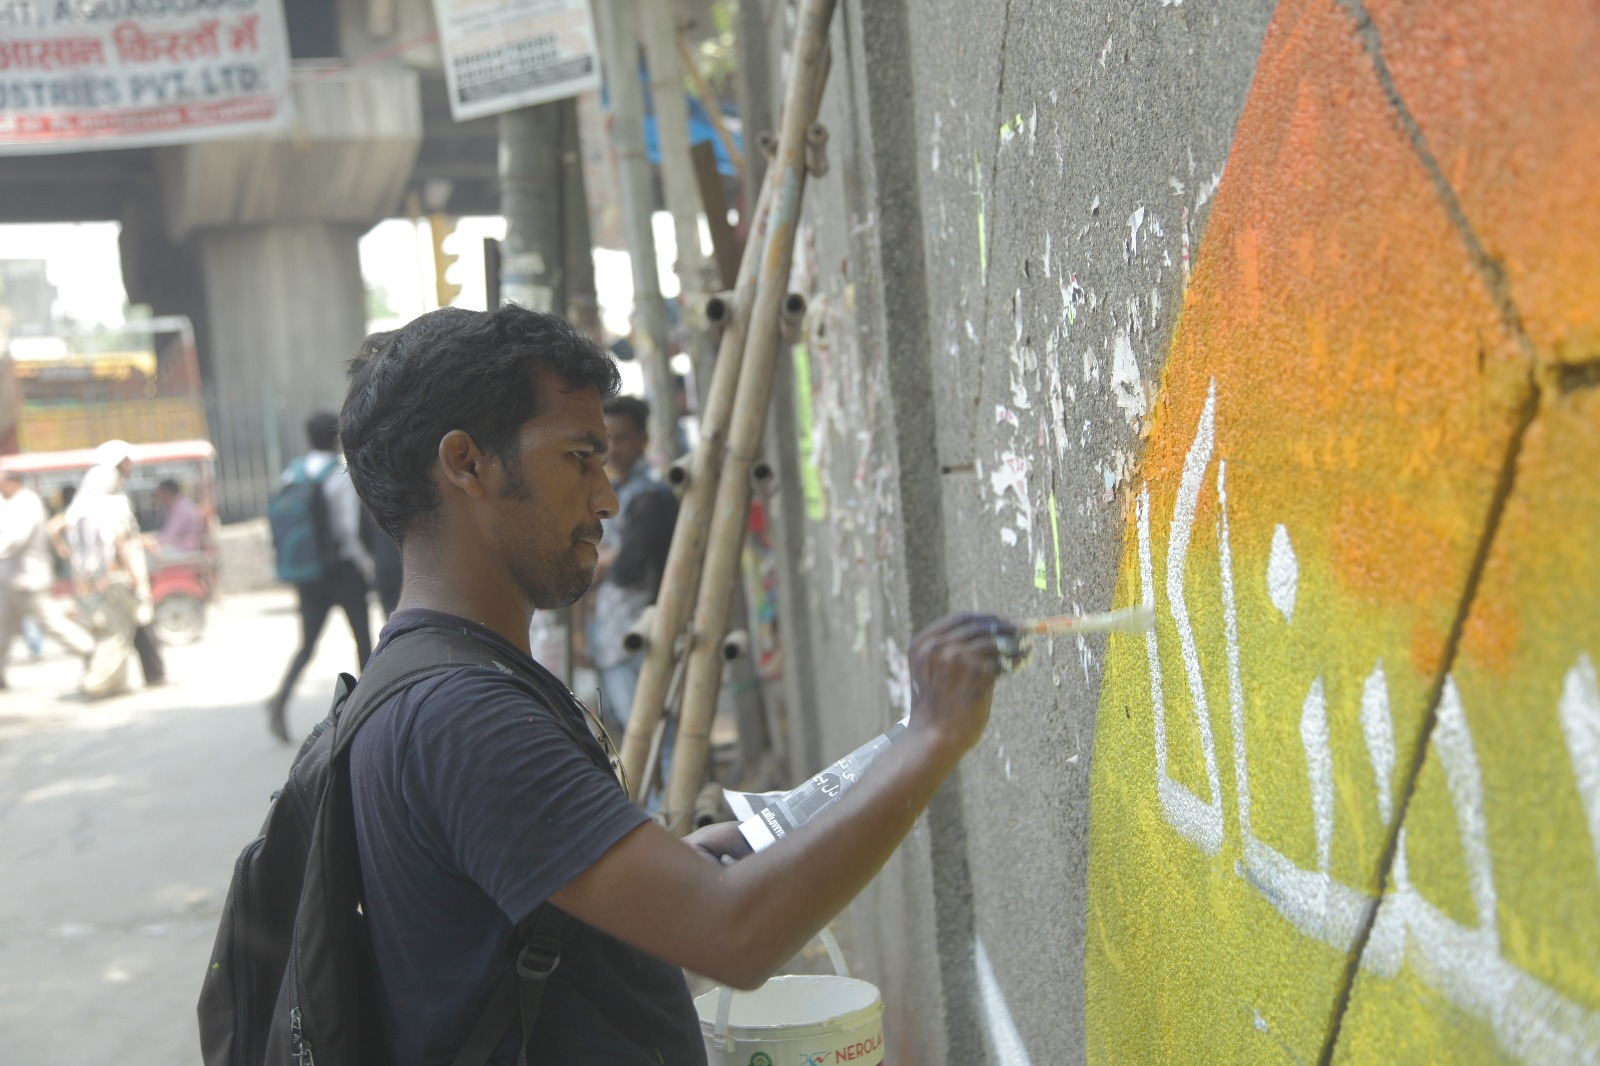 Akhlaq Ahmad at work on the Urdu couplet. Credit: Delhi, I Love You